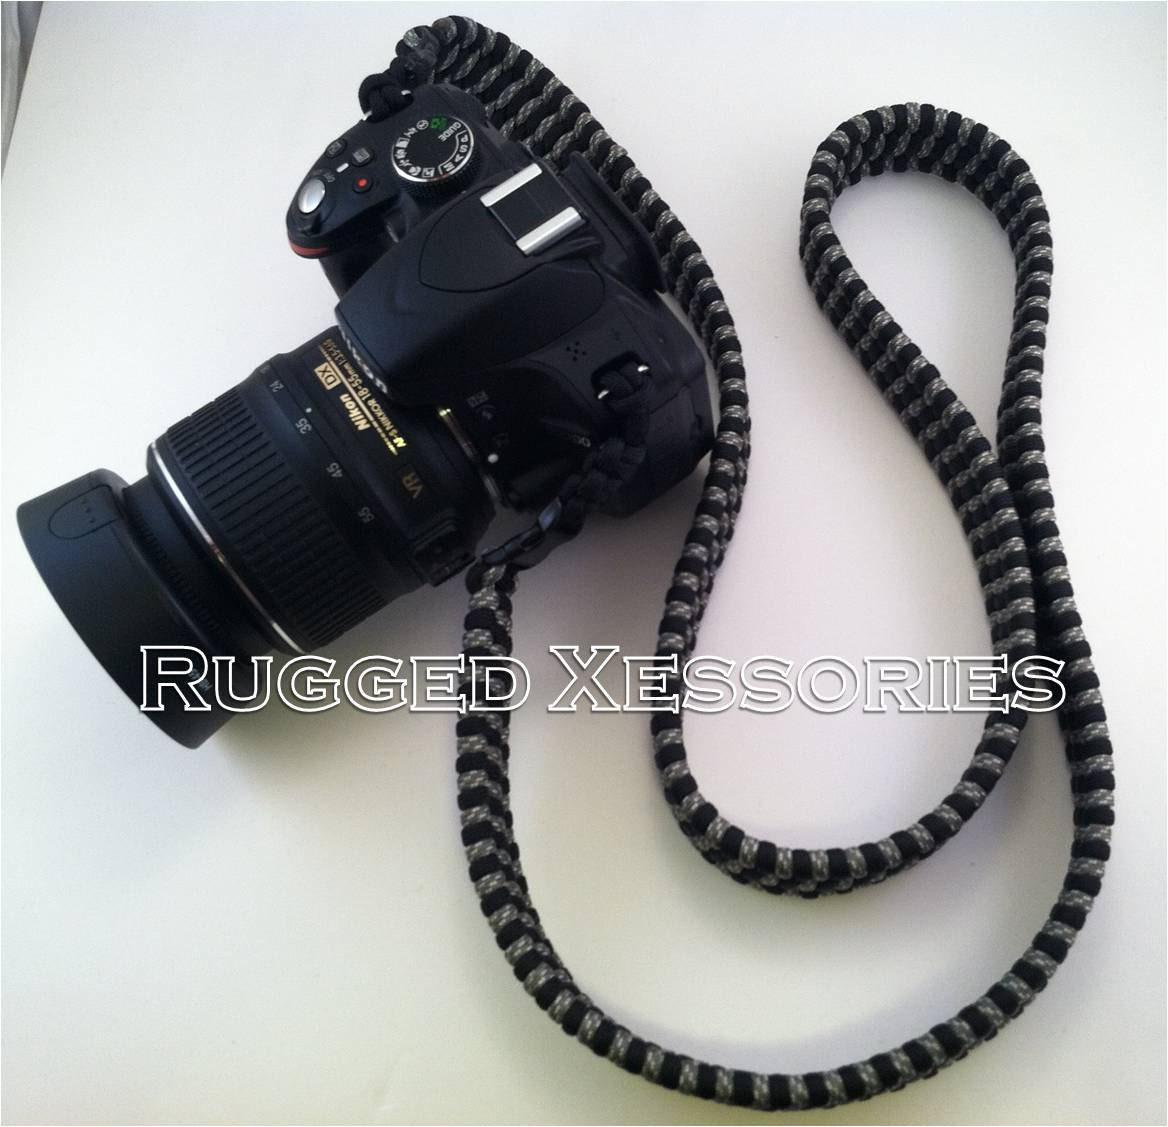 Camera Paracord Camera Strap paracord camera strap survival by ruggedxessories